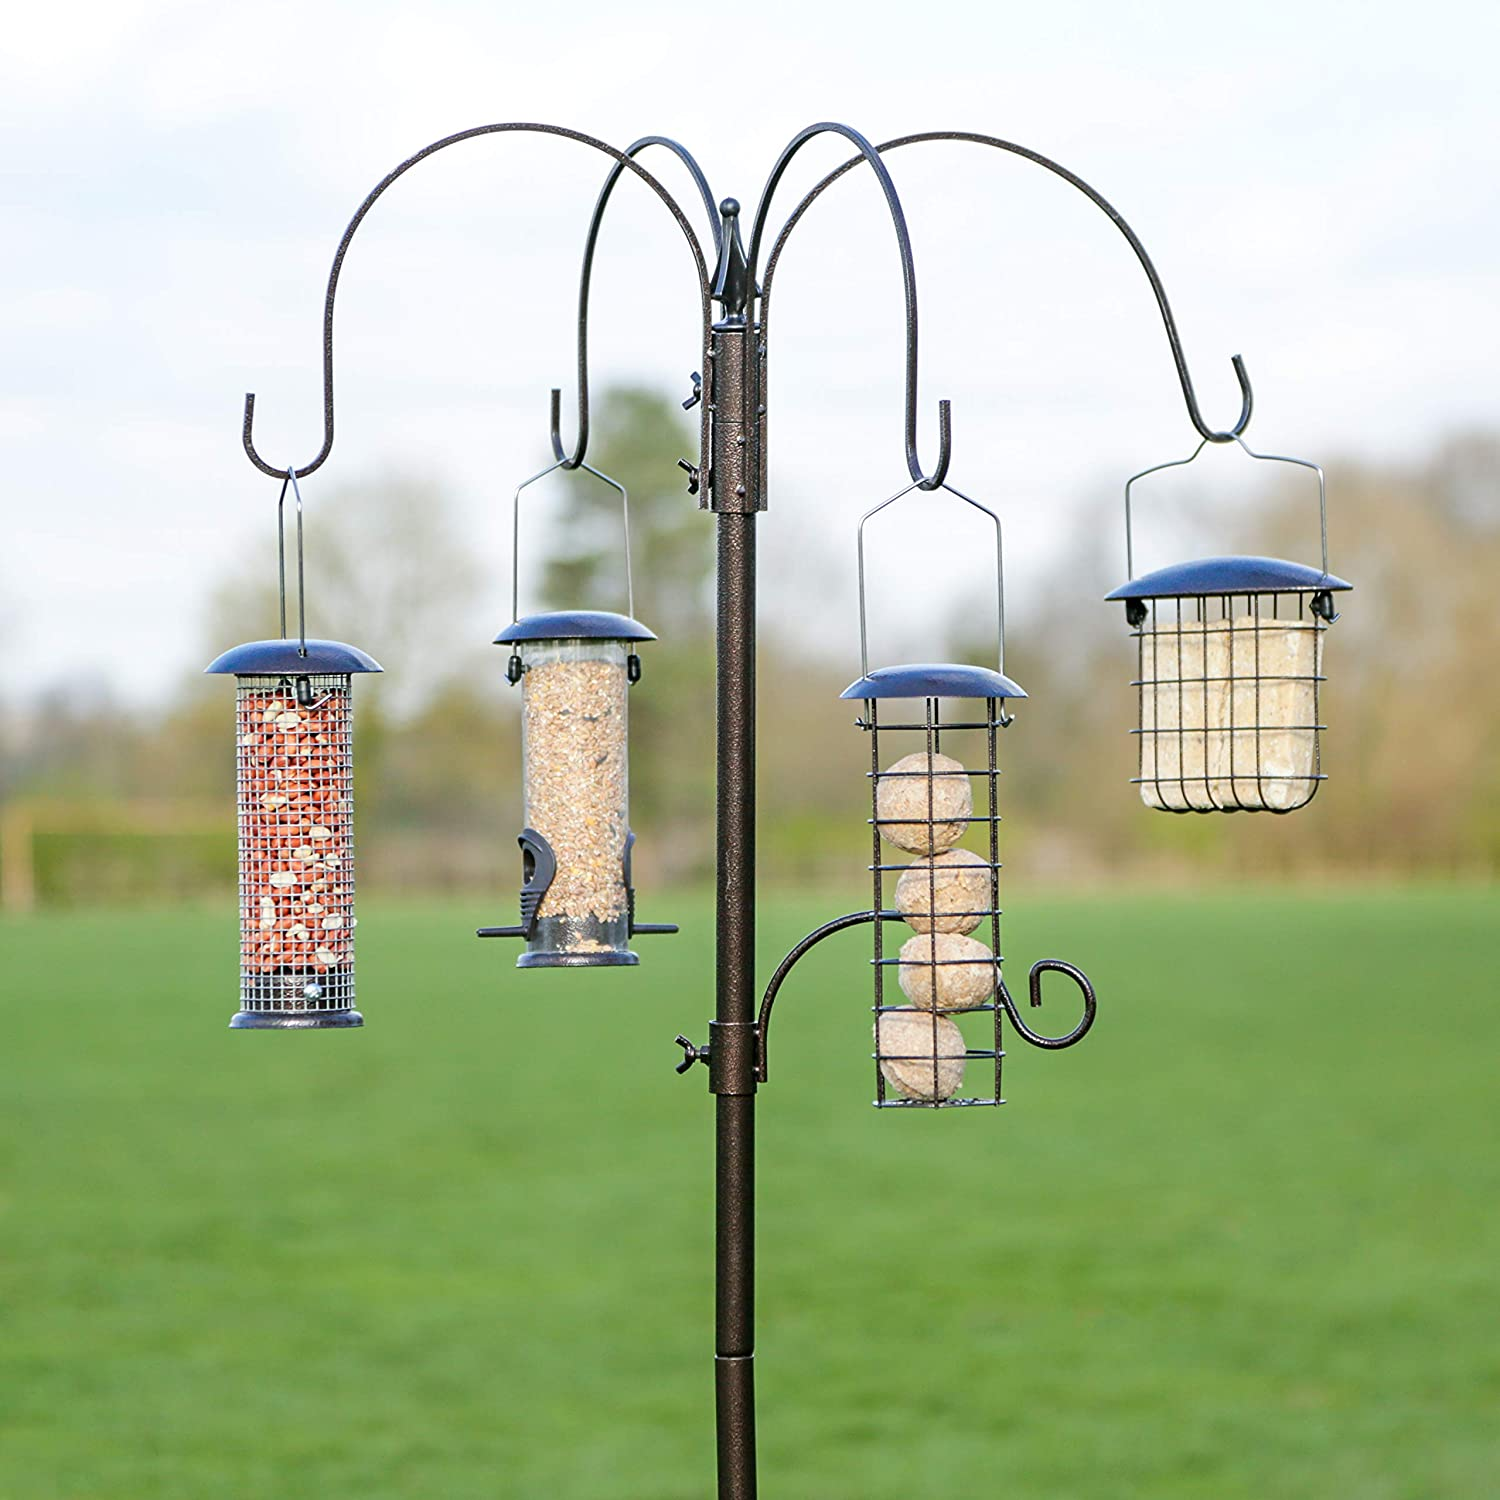 Kingfisher Premium Hammertone Garden Bird Feeding Station with Feeders